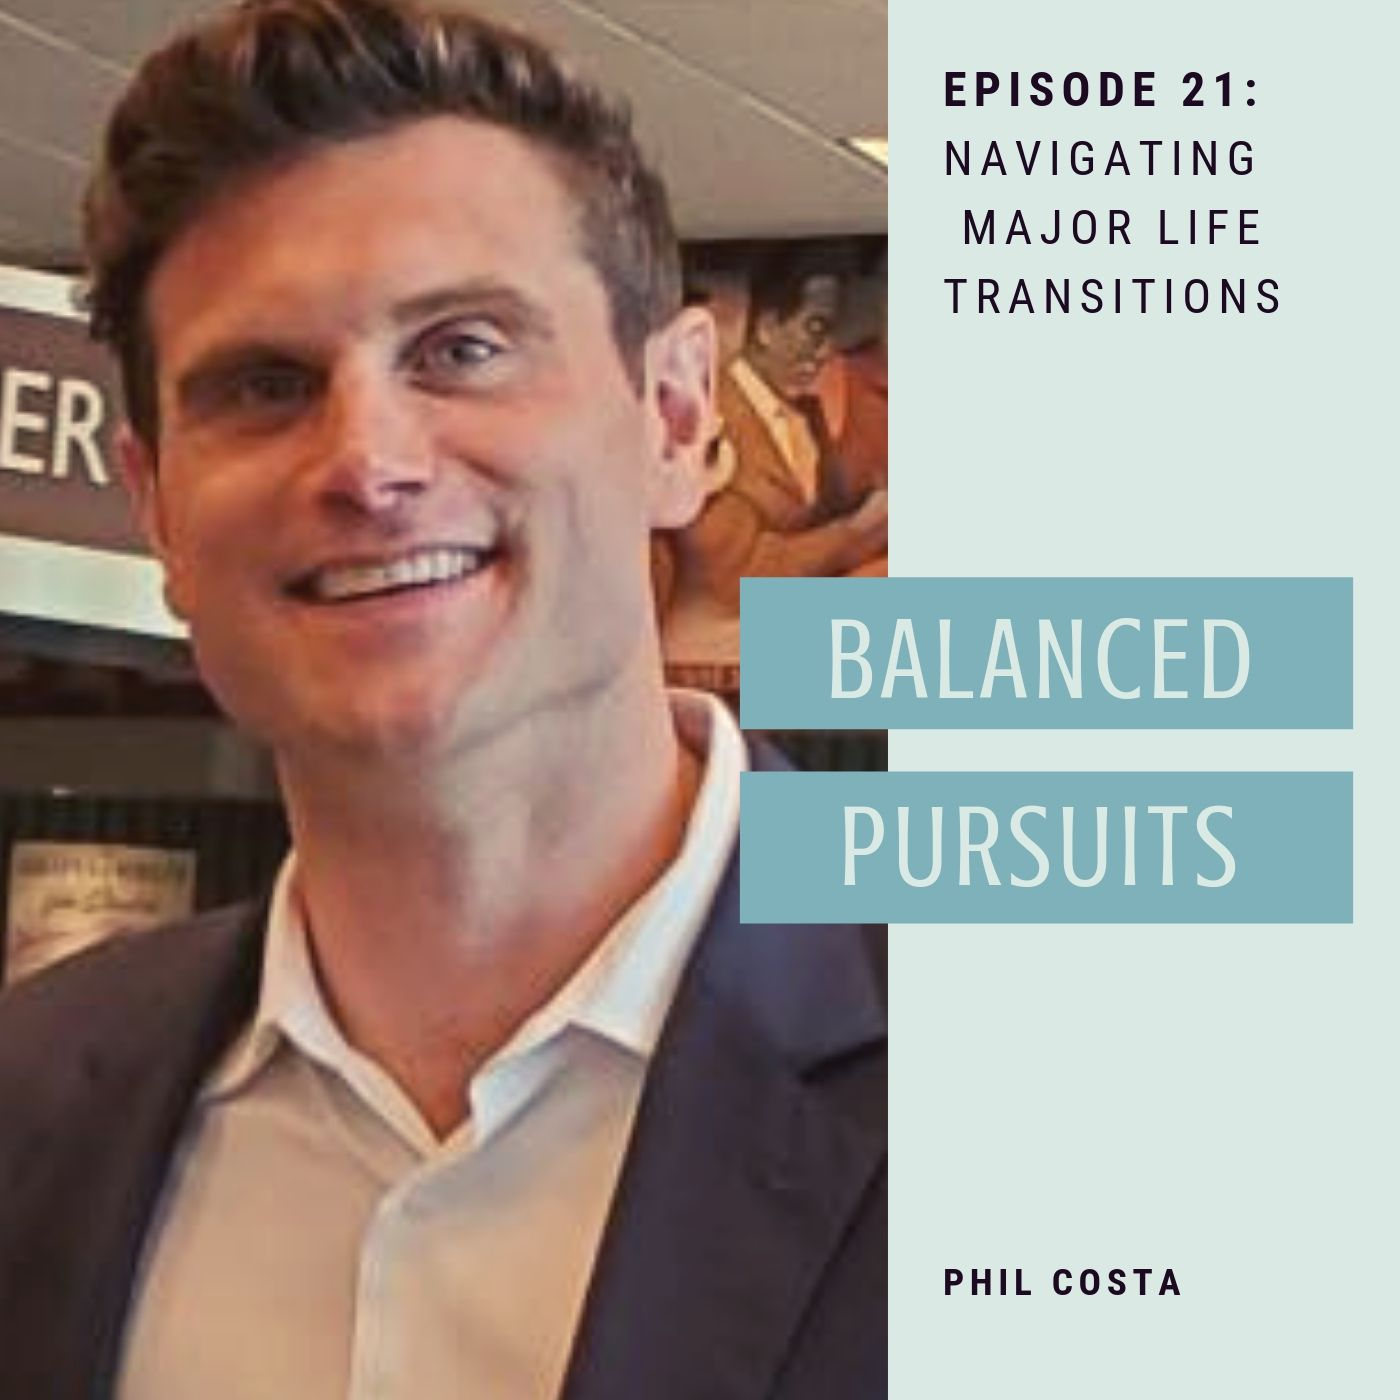 Episode 21: Phil Costa - Navigating Major Life Transitions